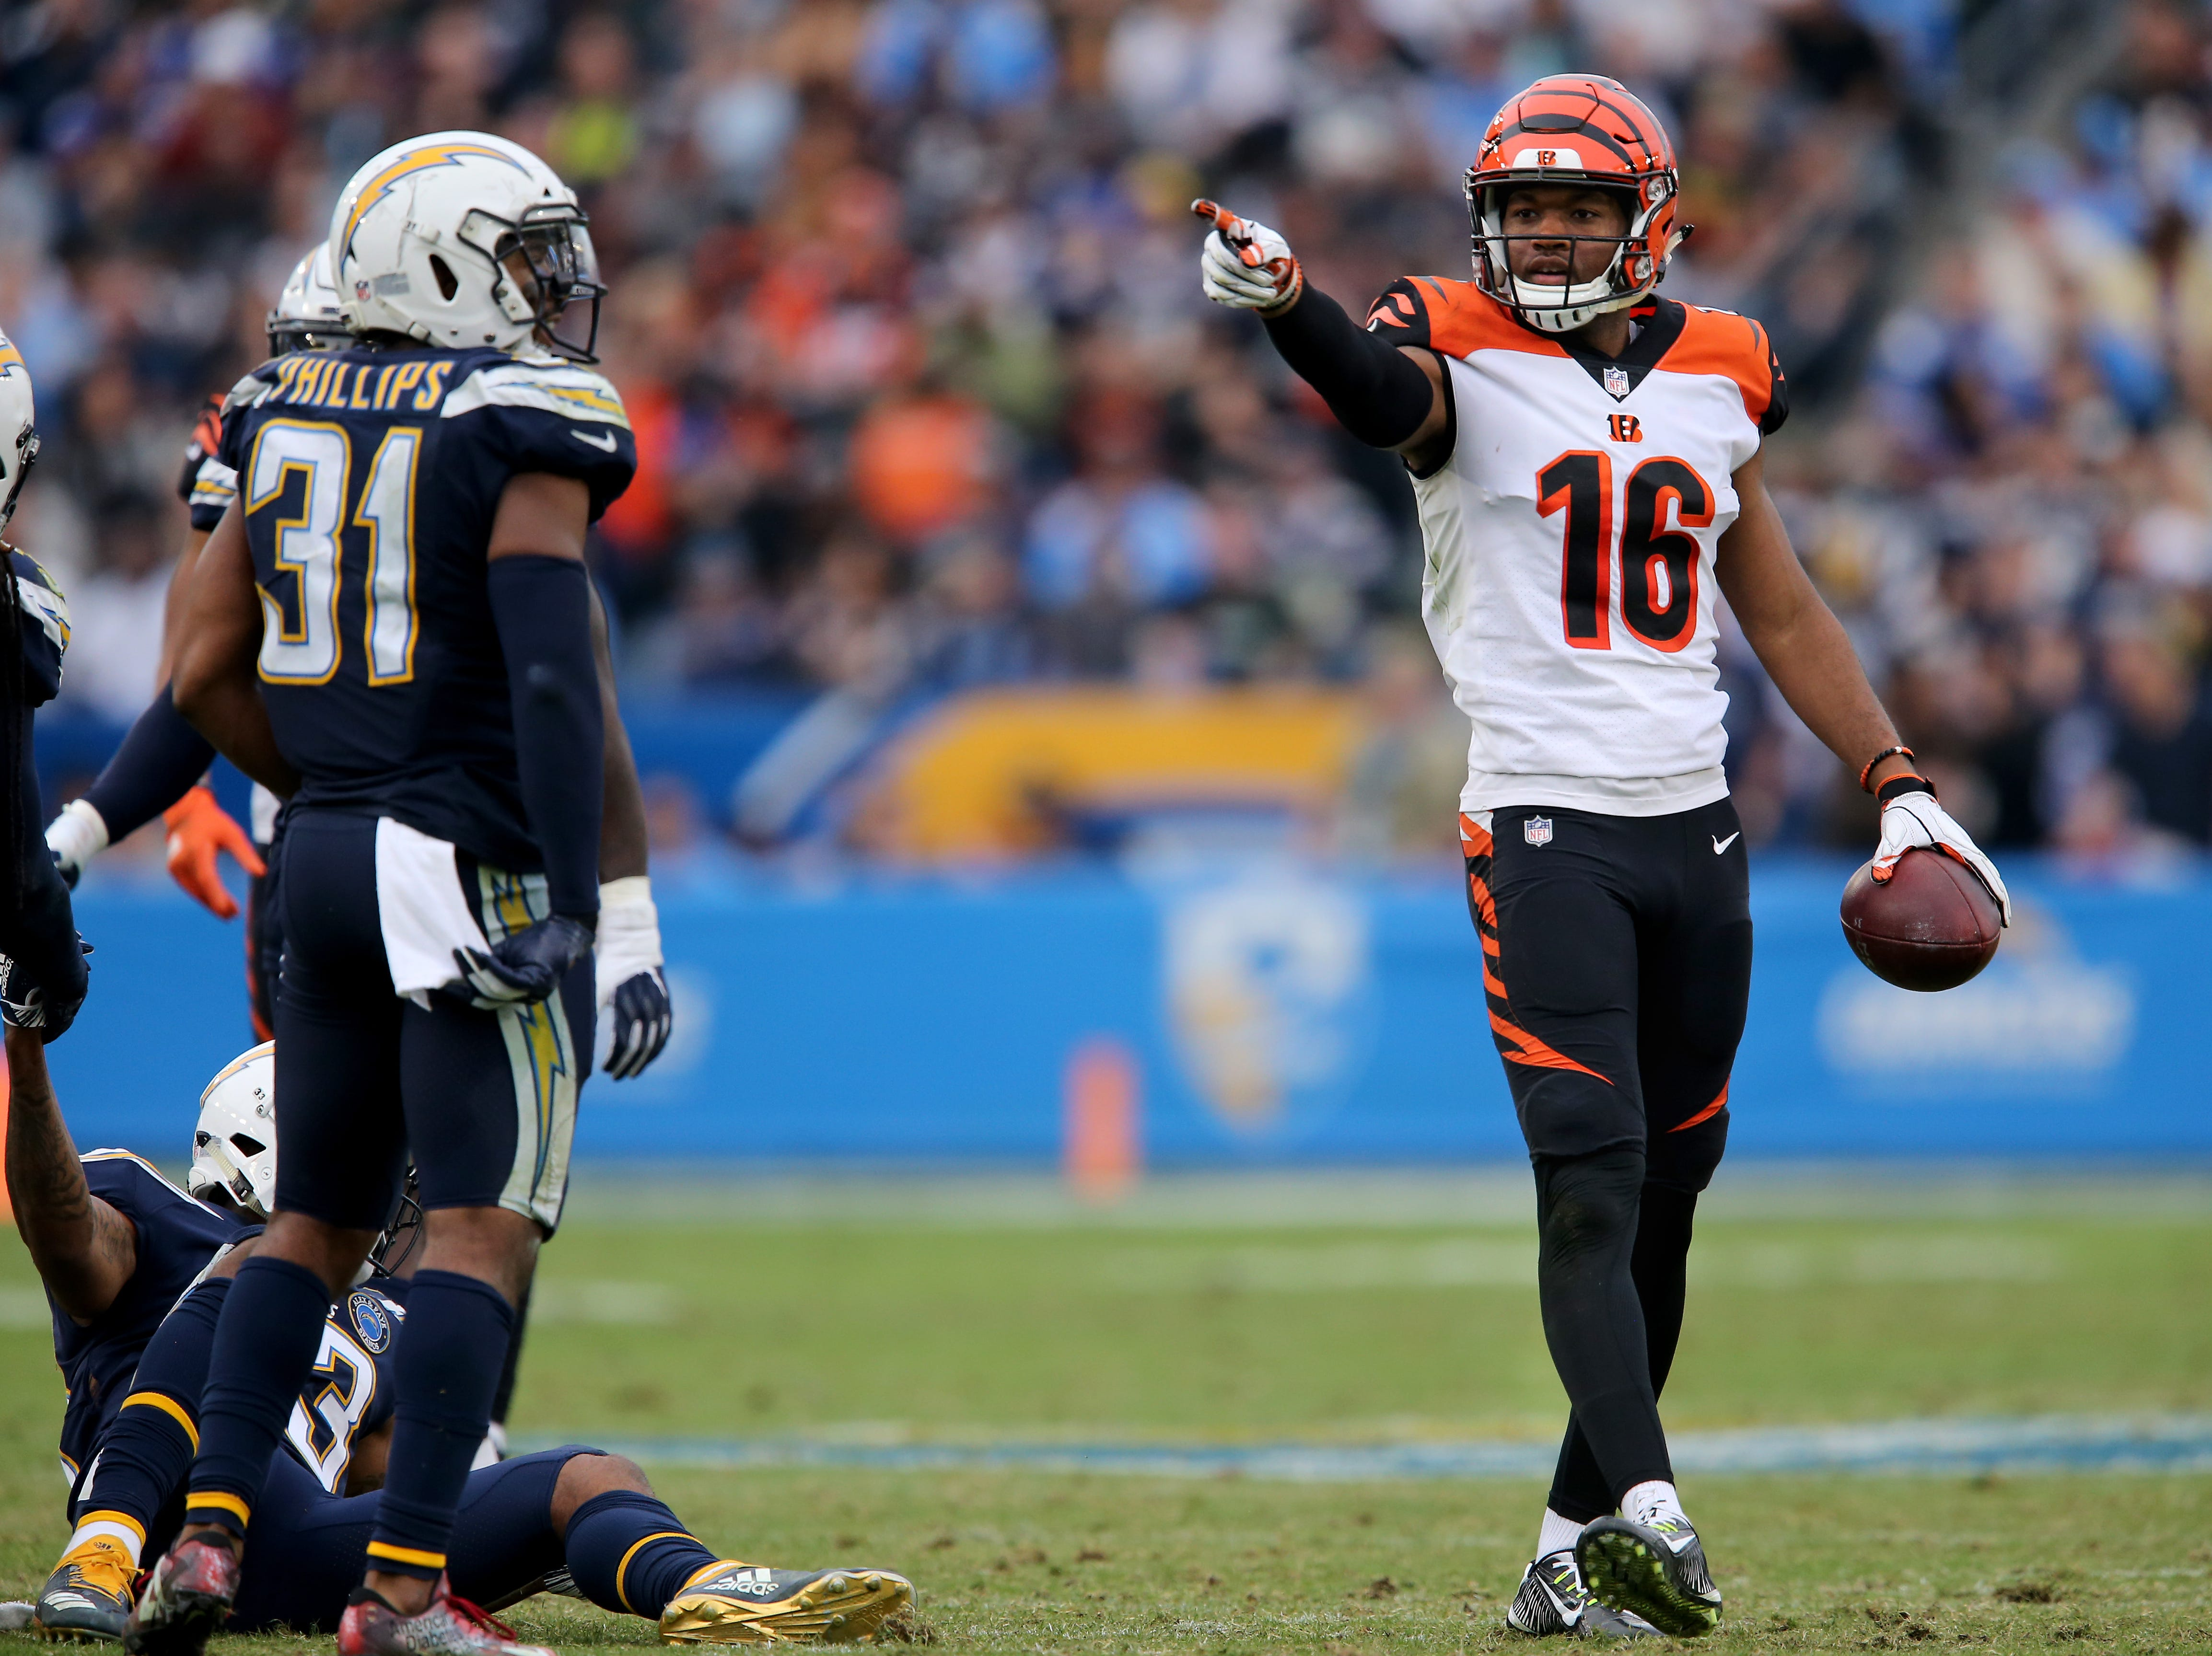 Cincinnati Bengals wide receiver Cody Core (16) signals for a first down after completing a catch in the fourth quarter of a Week 14 NFL football game, Sunday, Dec. 9, 2018, at StubHub Center in Carson, California.